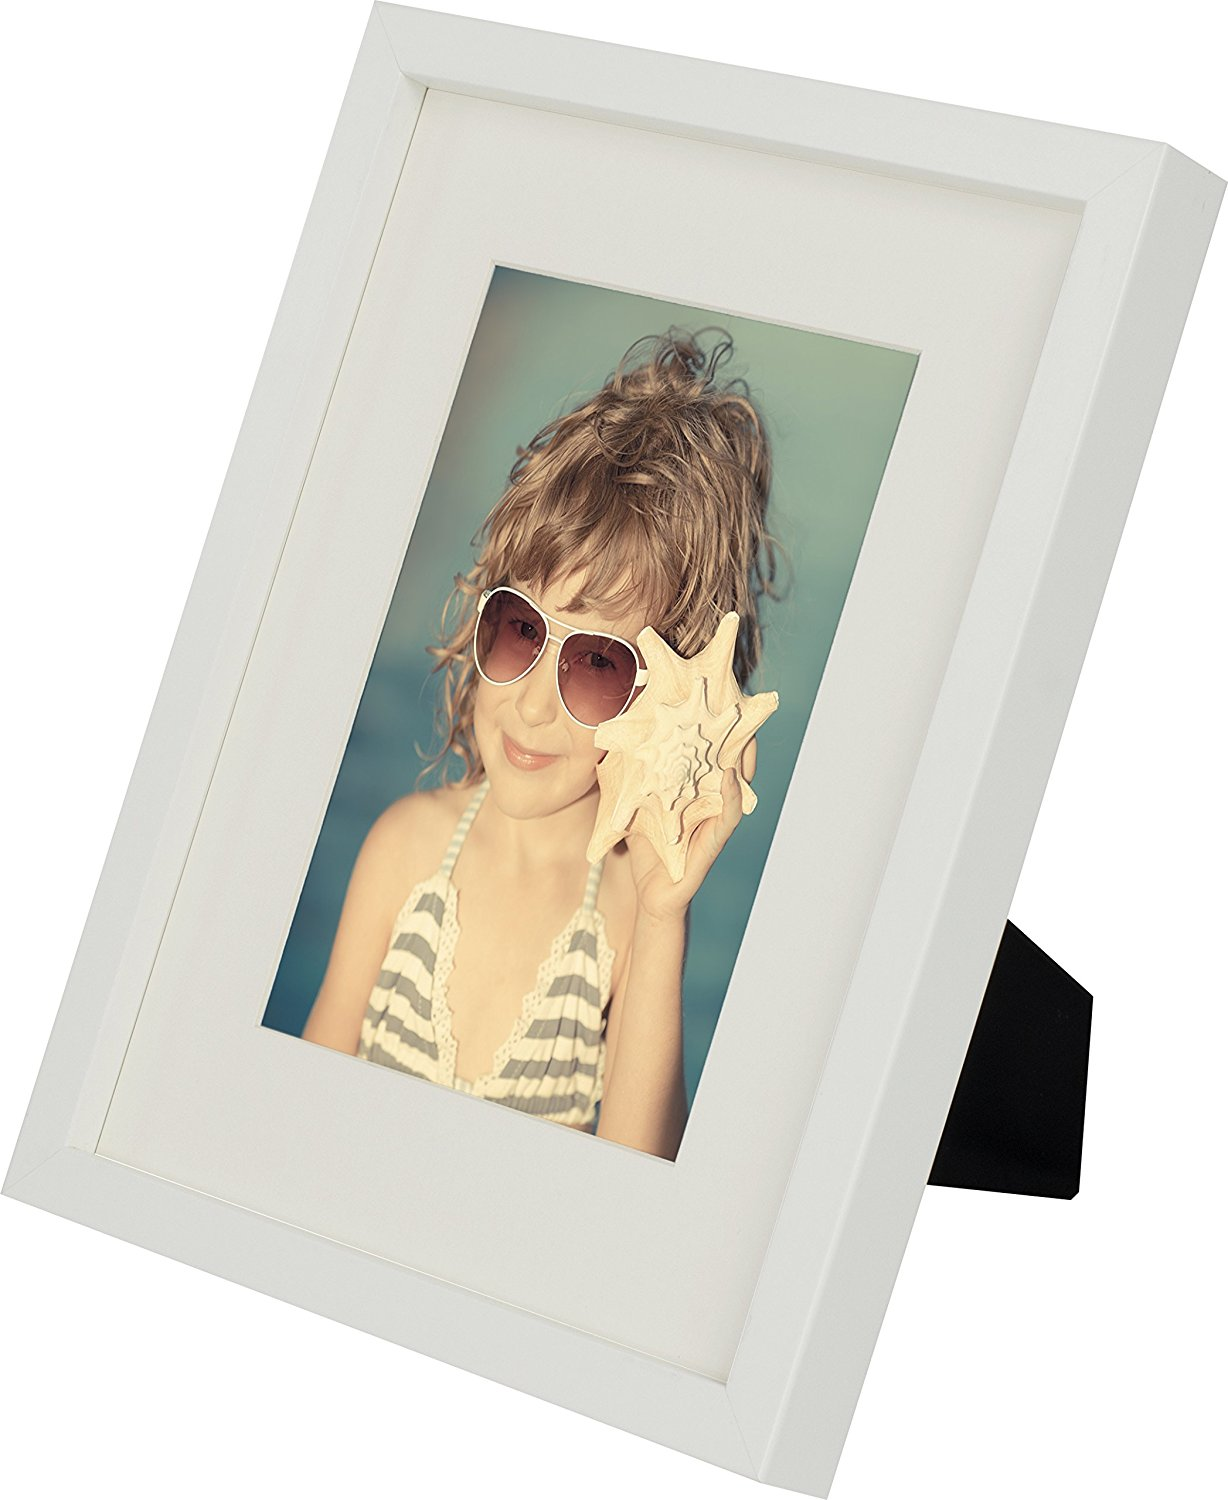 8 x 10-Inch Picture Photo Frame with mount for 5 x 7-Inch photo, WHITE